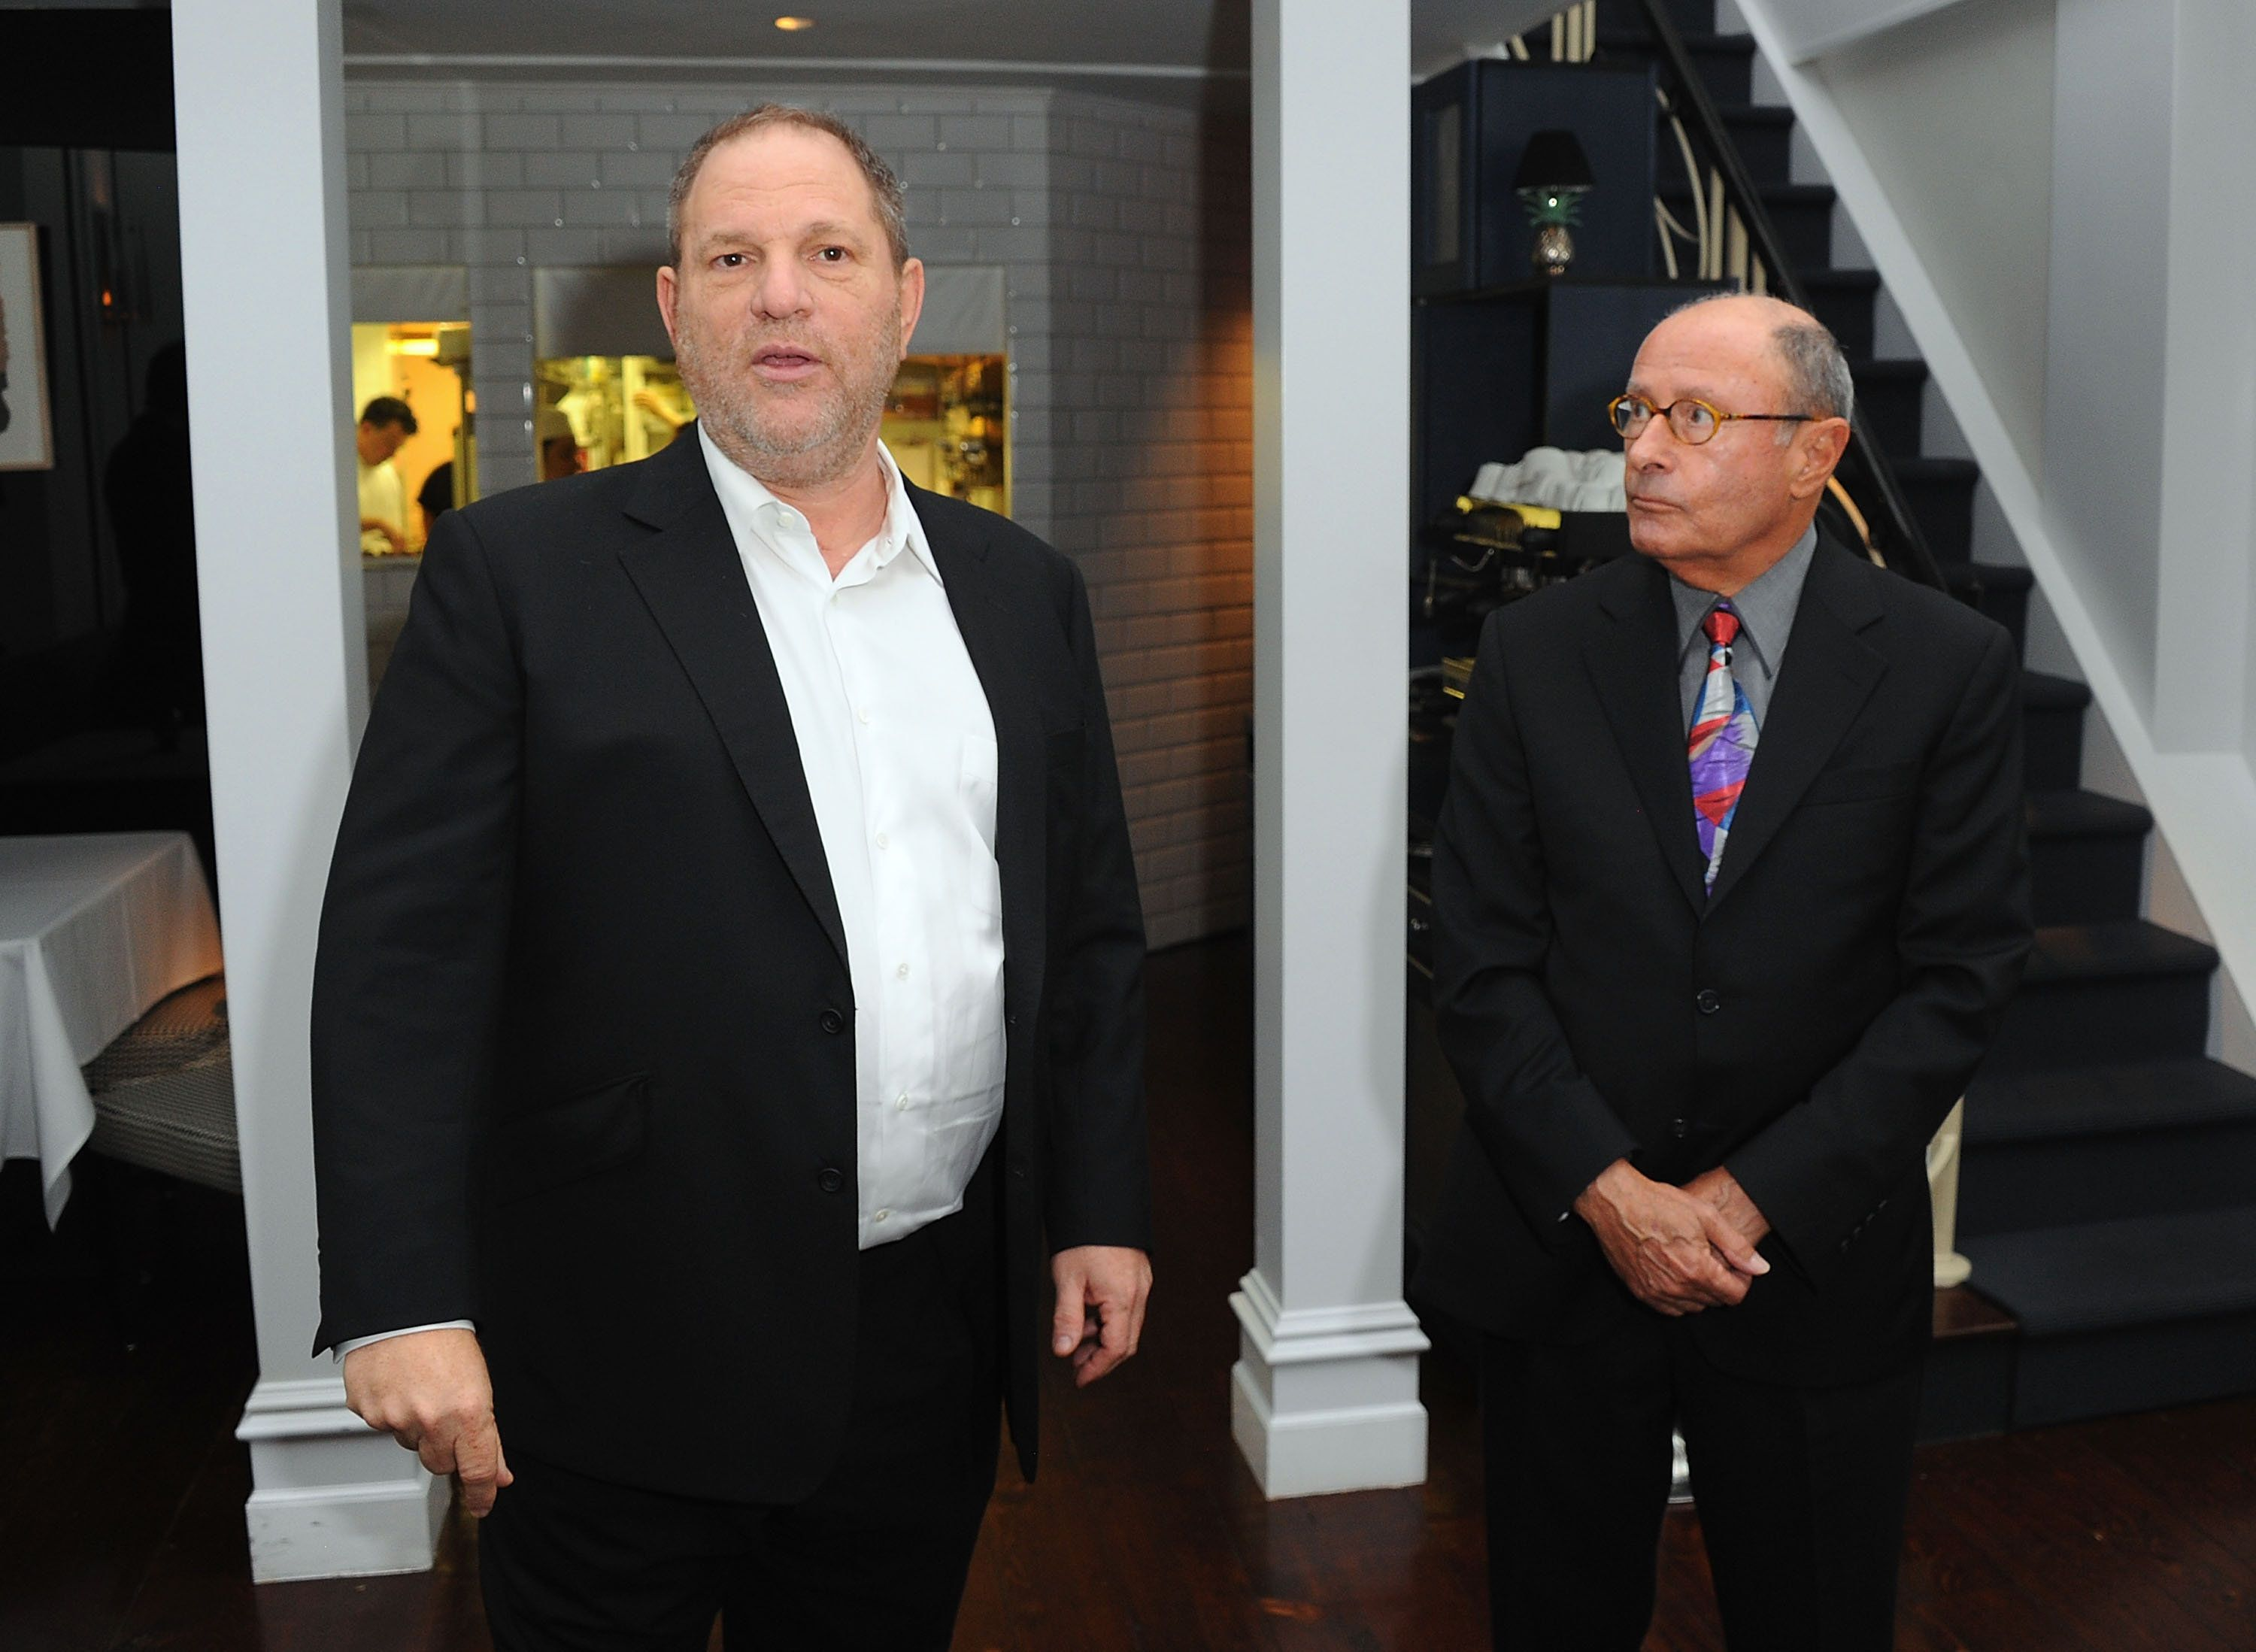 (L-R) Harvey Weinstein and author Peter Bart attend the launch party for Bart's new book 'Infamous Players' hosted by The Weinstein Company at Desmond's on April 25, 2011 in New York City. (Photo by Andrew H. Walker/WireImage)